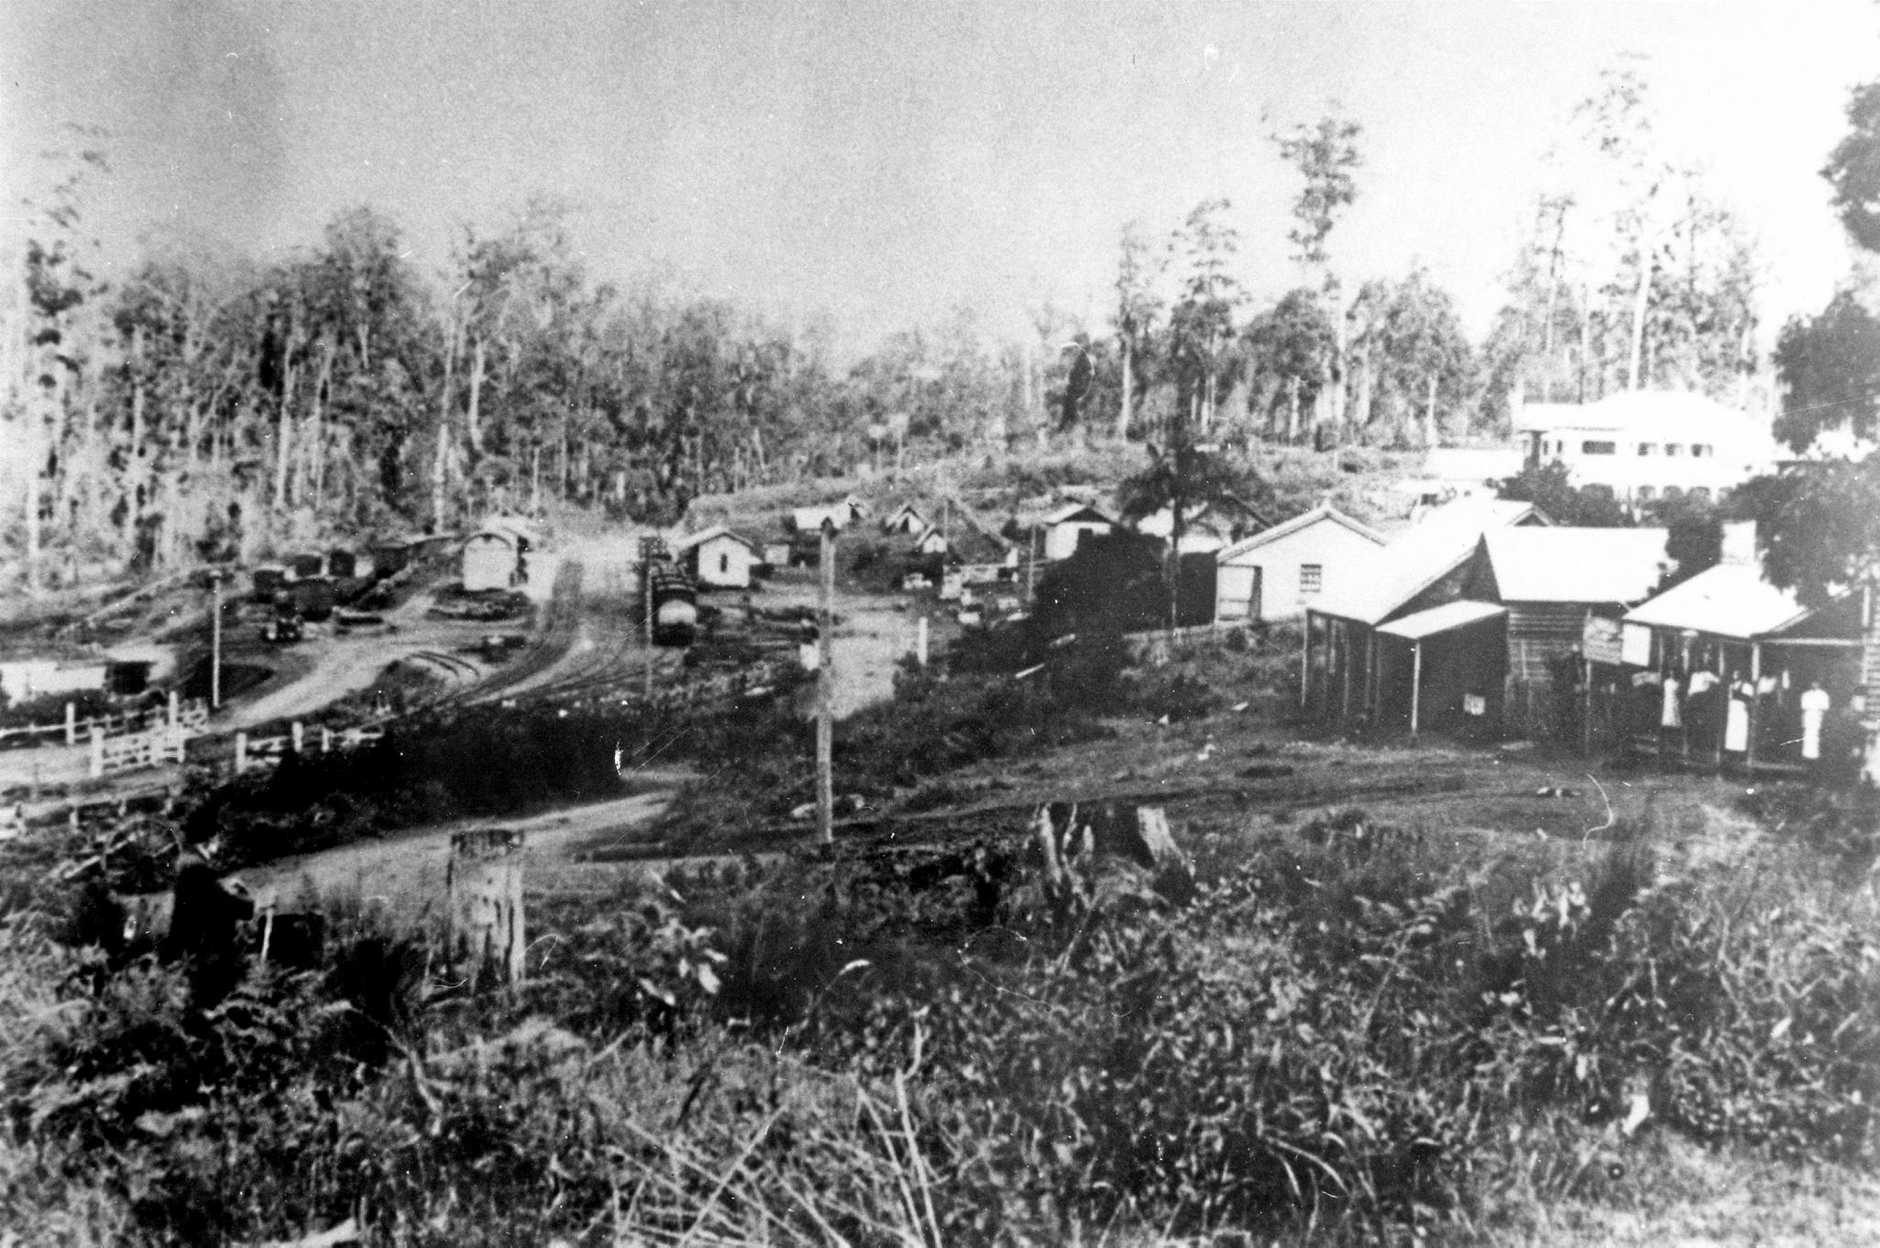 Palmwoods township, looking towards Railway Station from present site of Memorial Hall, 1919.